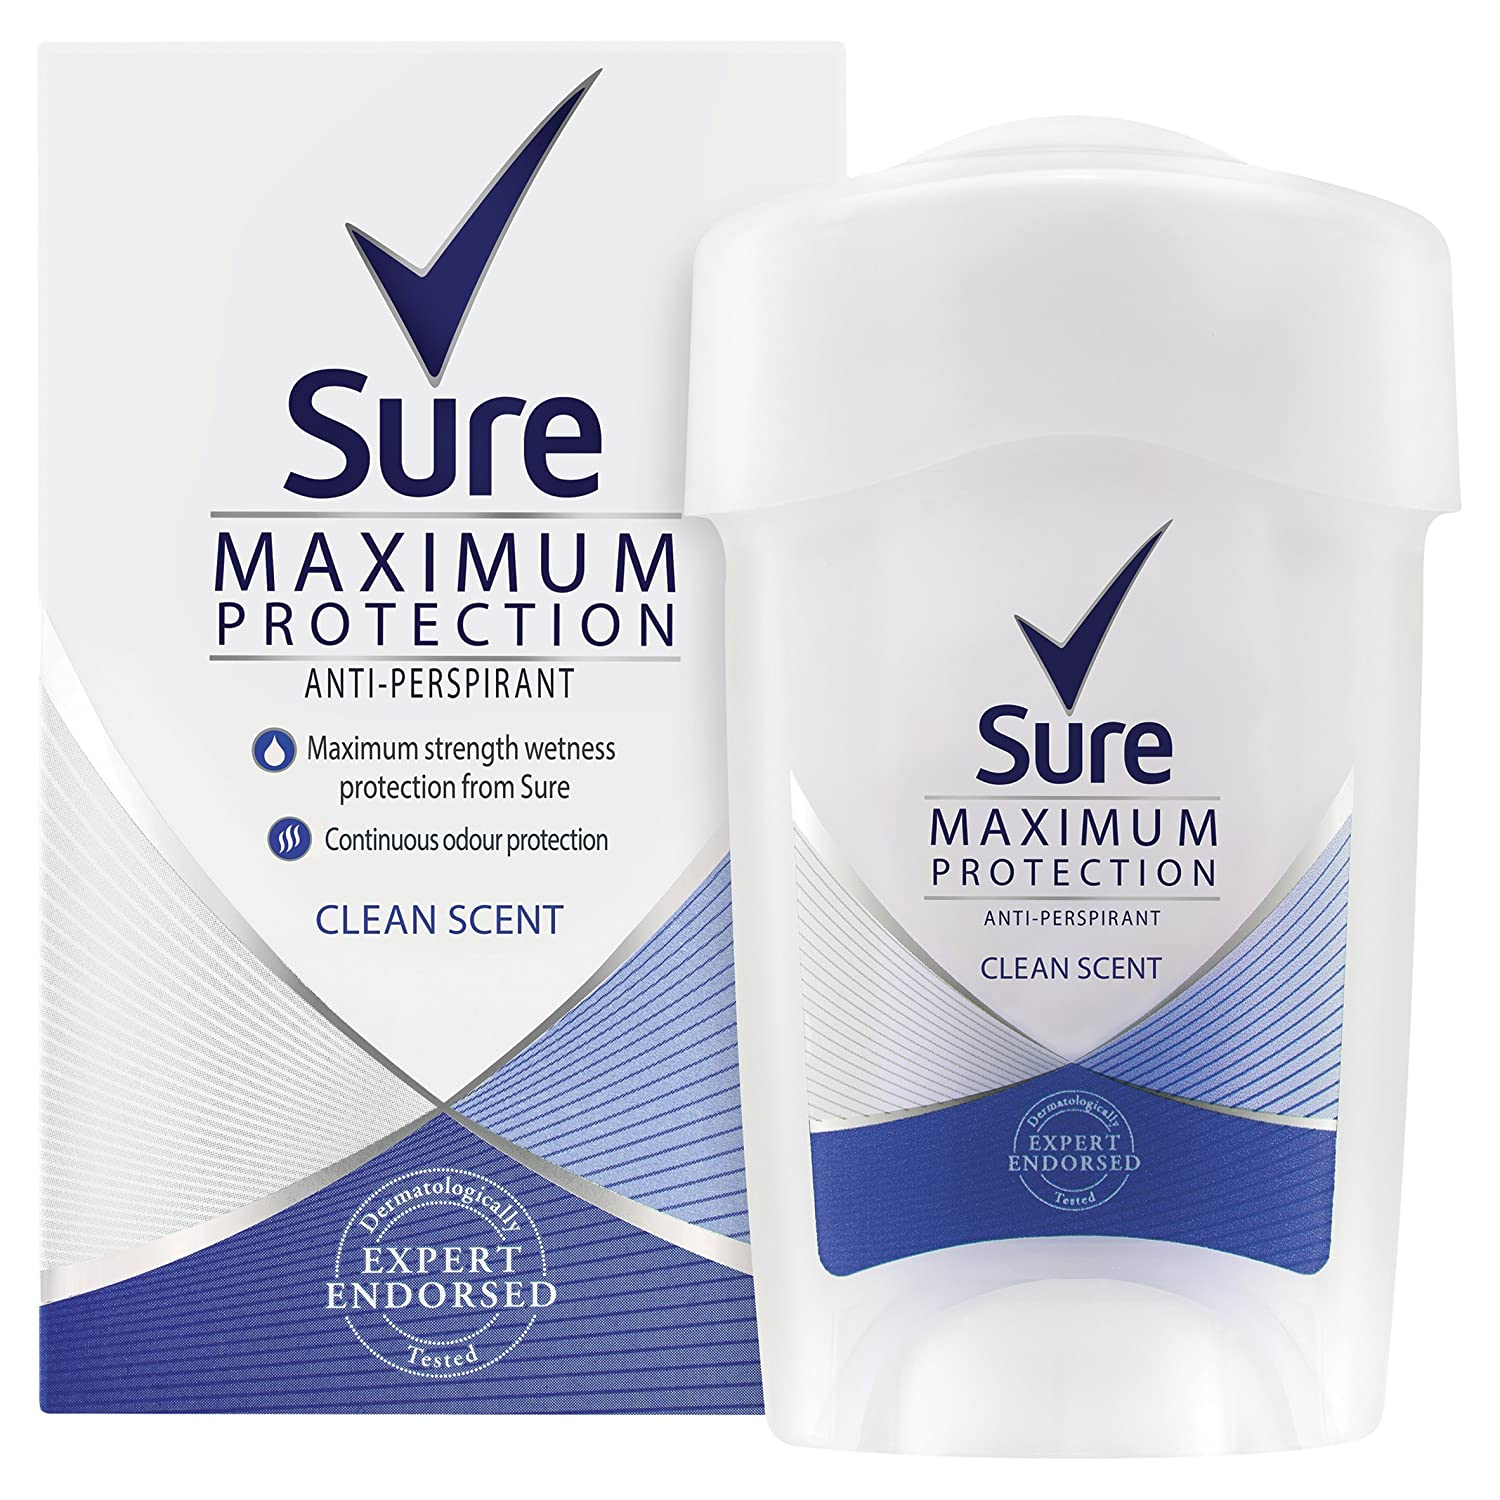 Sure Women Maximum Protection Clean Scent anti-Perspirant Deodorant Cream, 45 ml, Pack of 3 Unilever 8865372